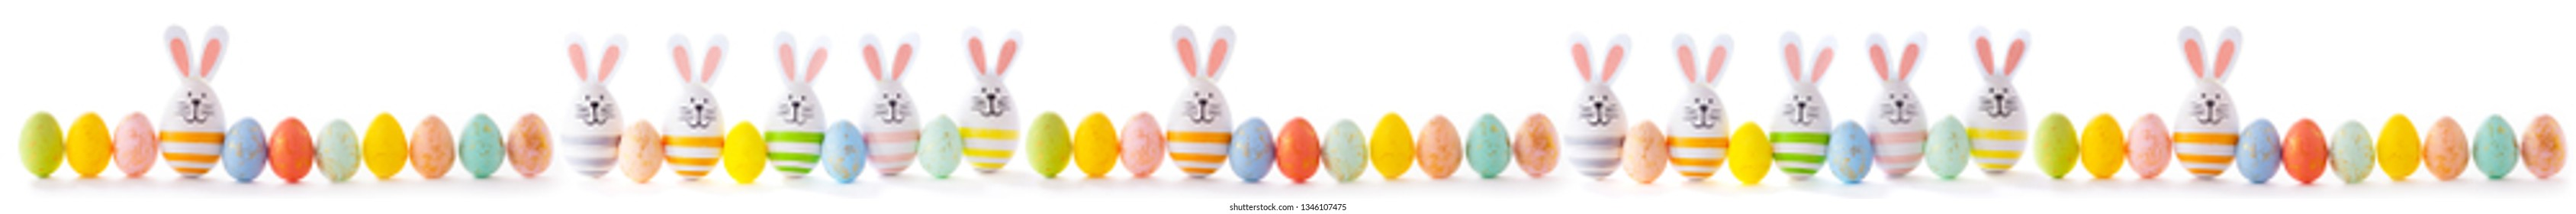 colorful  easter eggs with bunny ears and funny face panorama isolated on white background